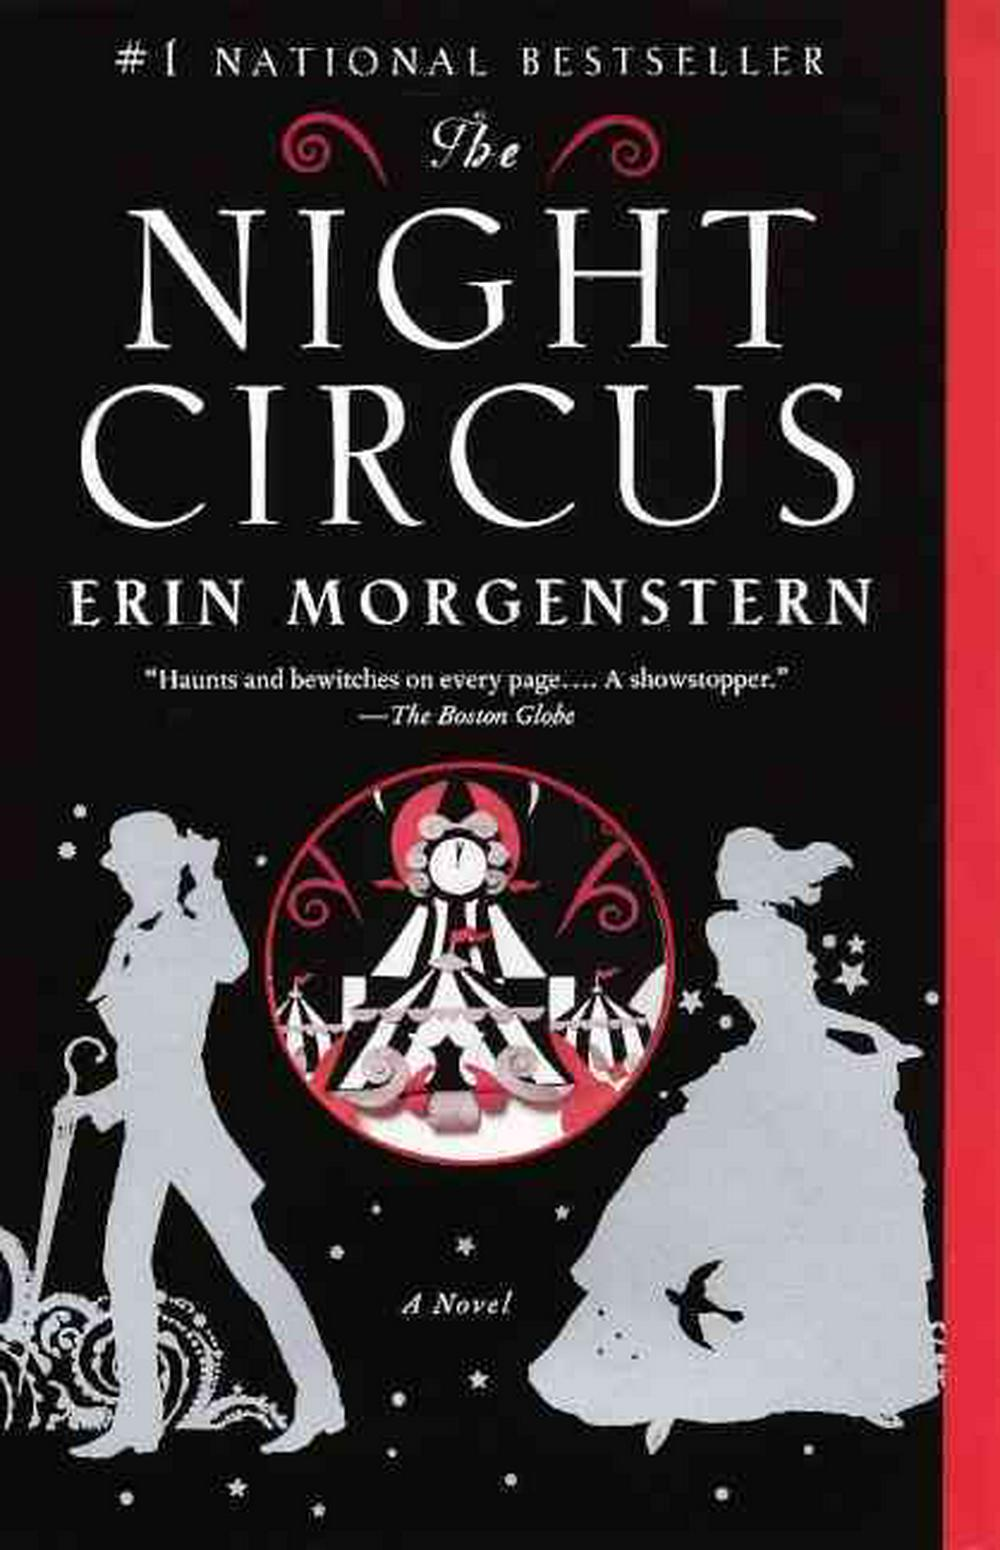 The Night Circus by Erin Morgenstern, ISBN: 9780606264167